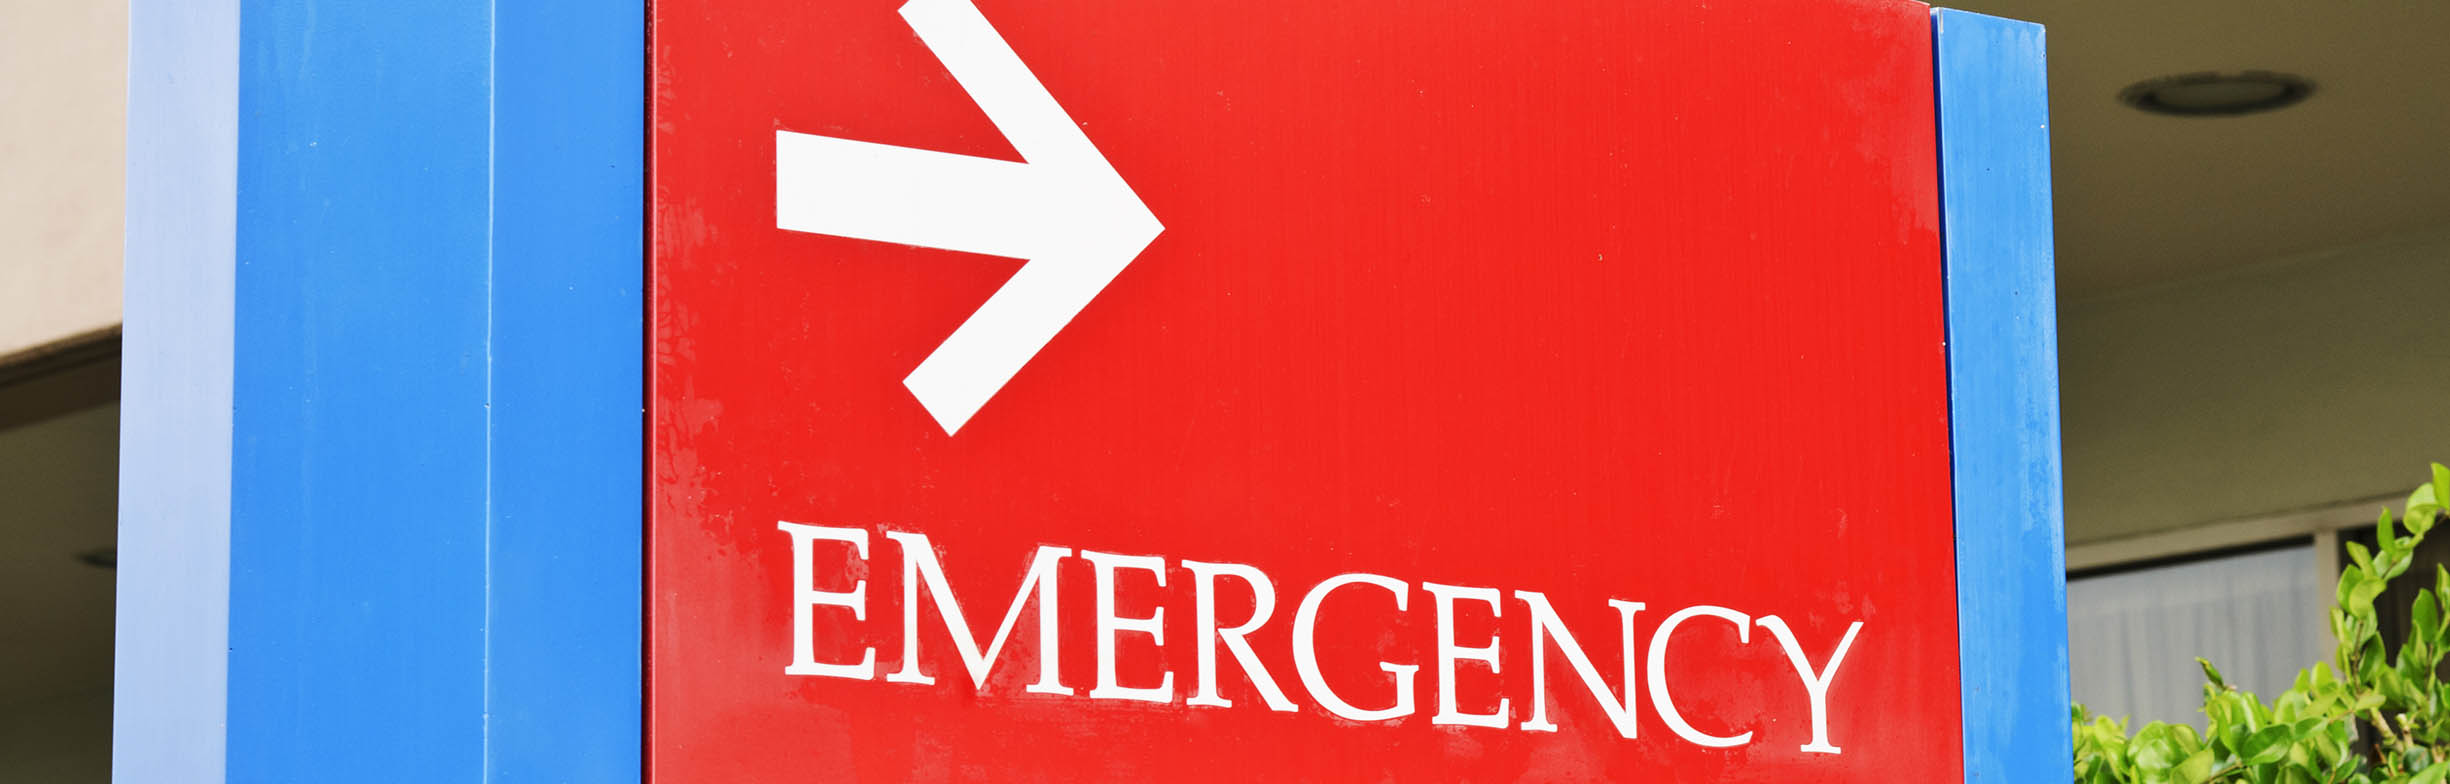 Emergency Medicine Doctors Finances